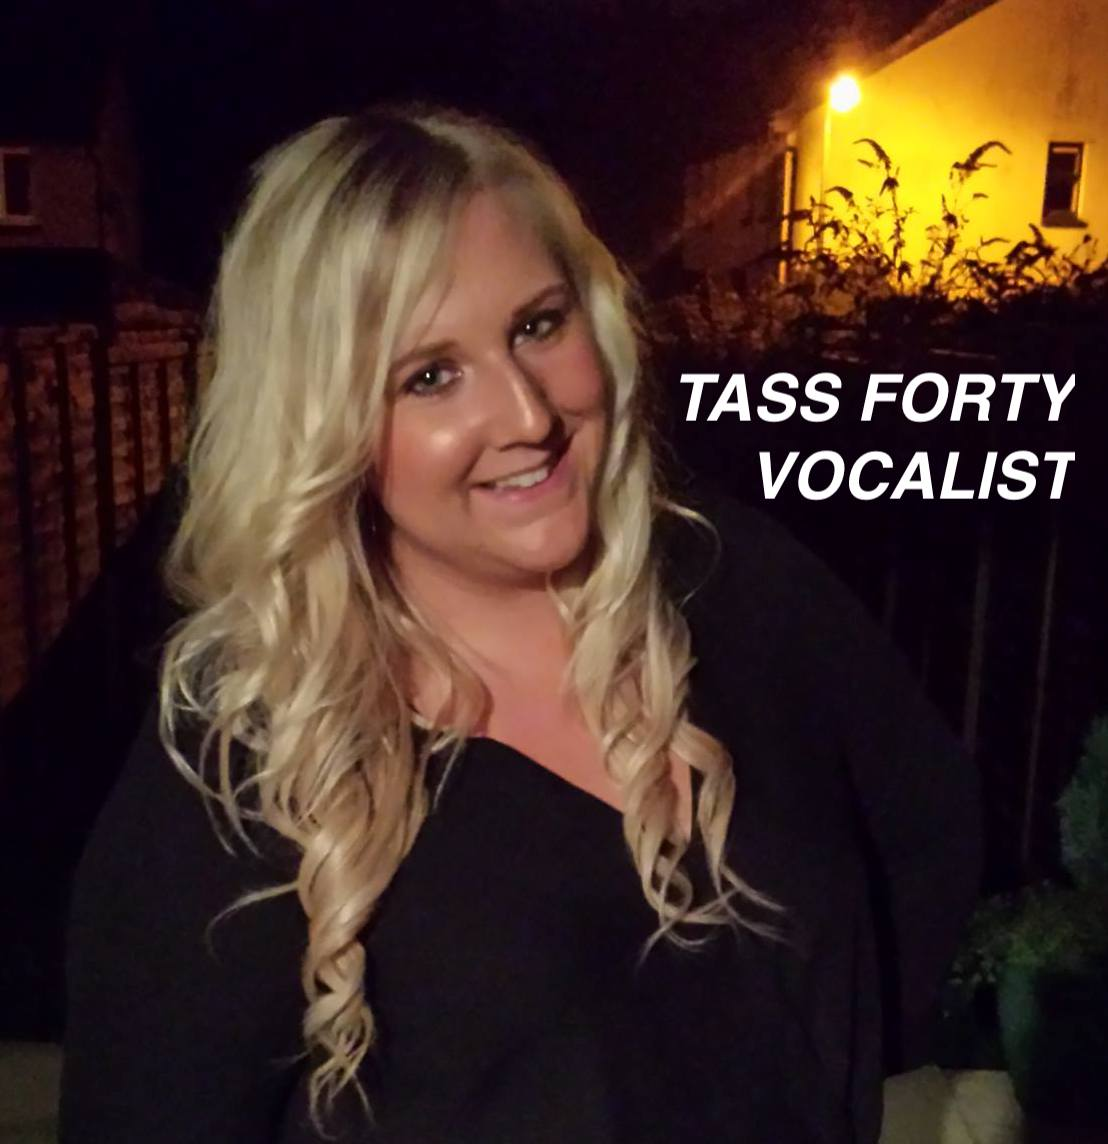 Tass Forty Vocalist